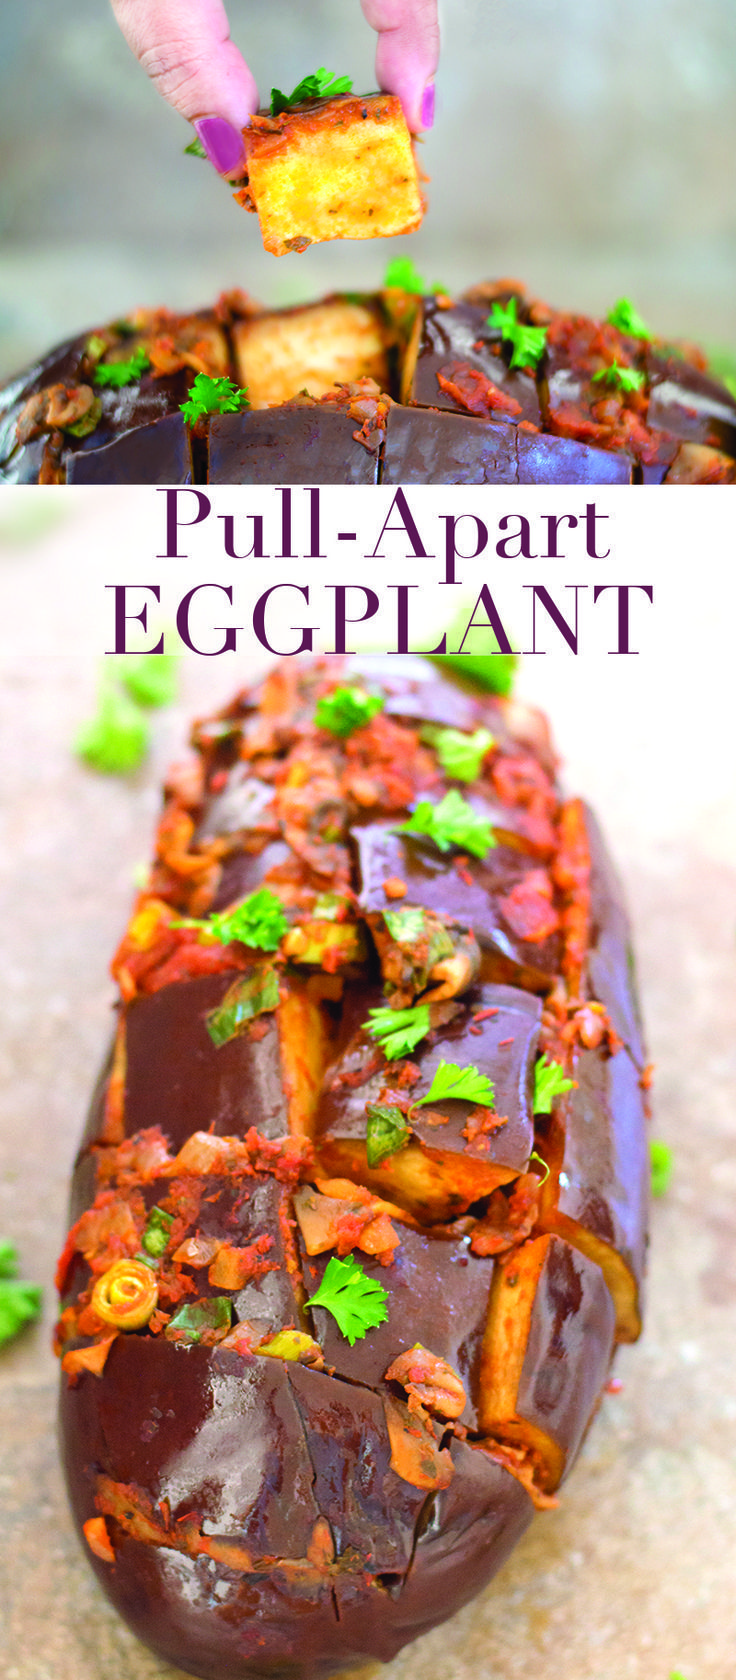 Eggplant appetizer recipes easy